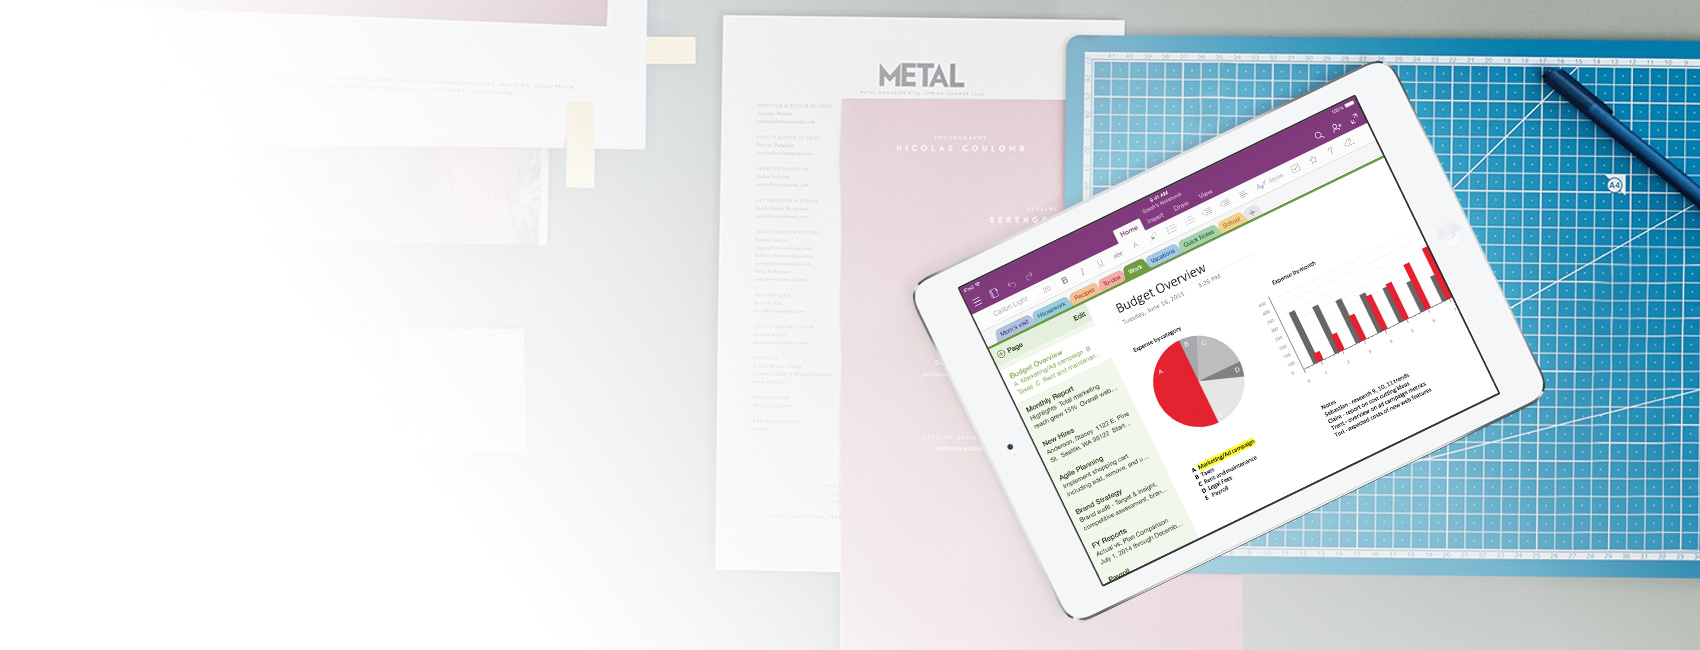 An iPad displaying a OneNote notebook with budget overview charts and graph